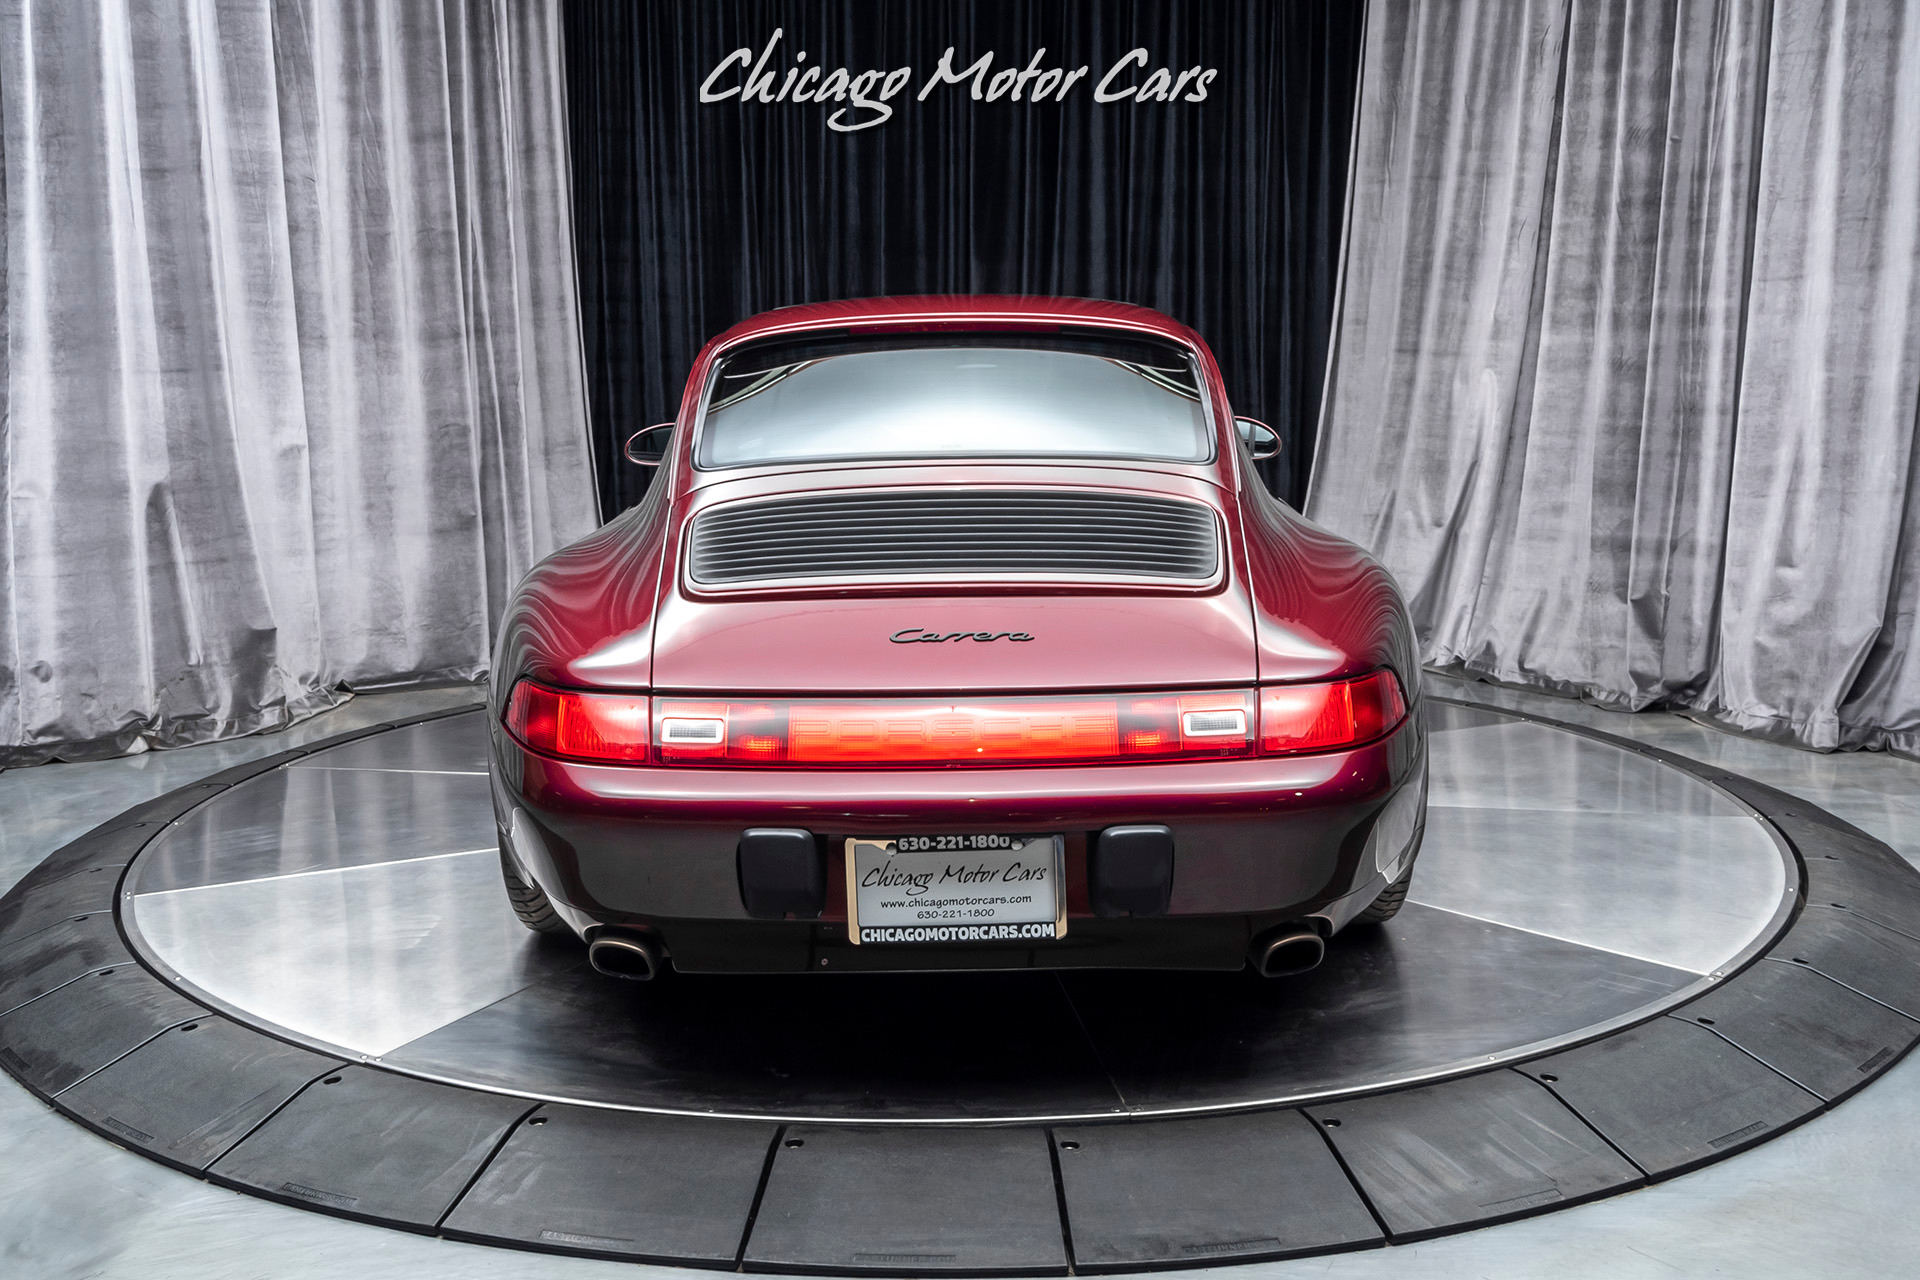 Used-1997-Porsche-911-Carrera-Coupe-6-SPEED-MANUAL-44K-MILES-GORGEOUS-COLOR